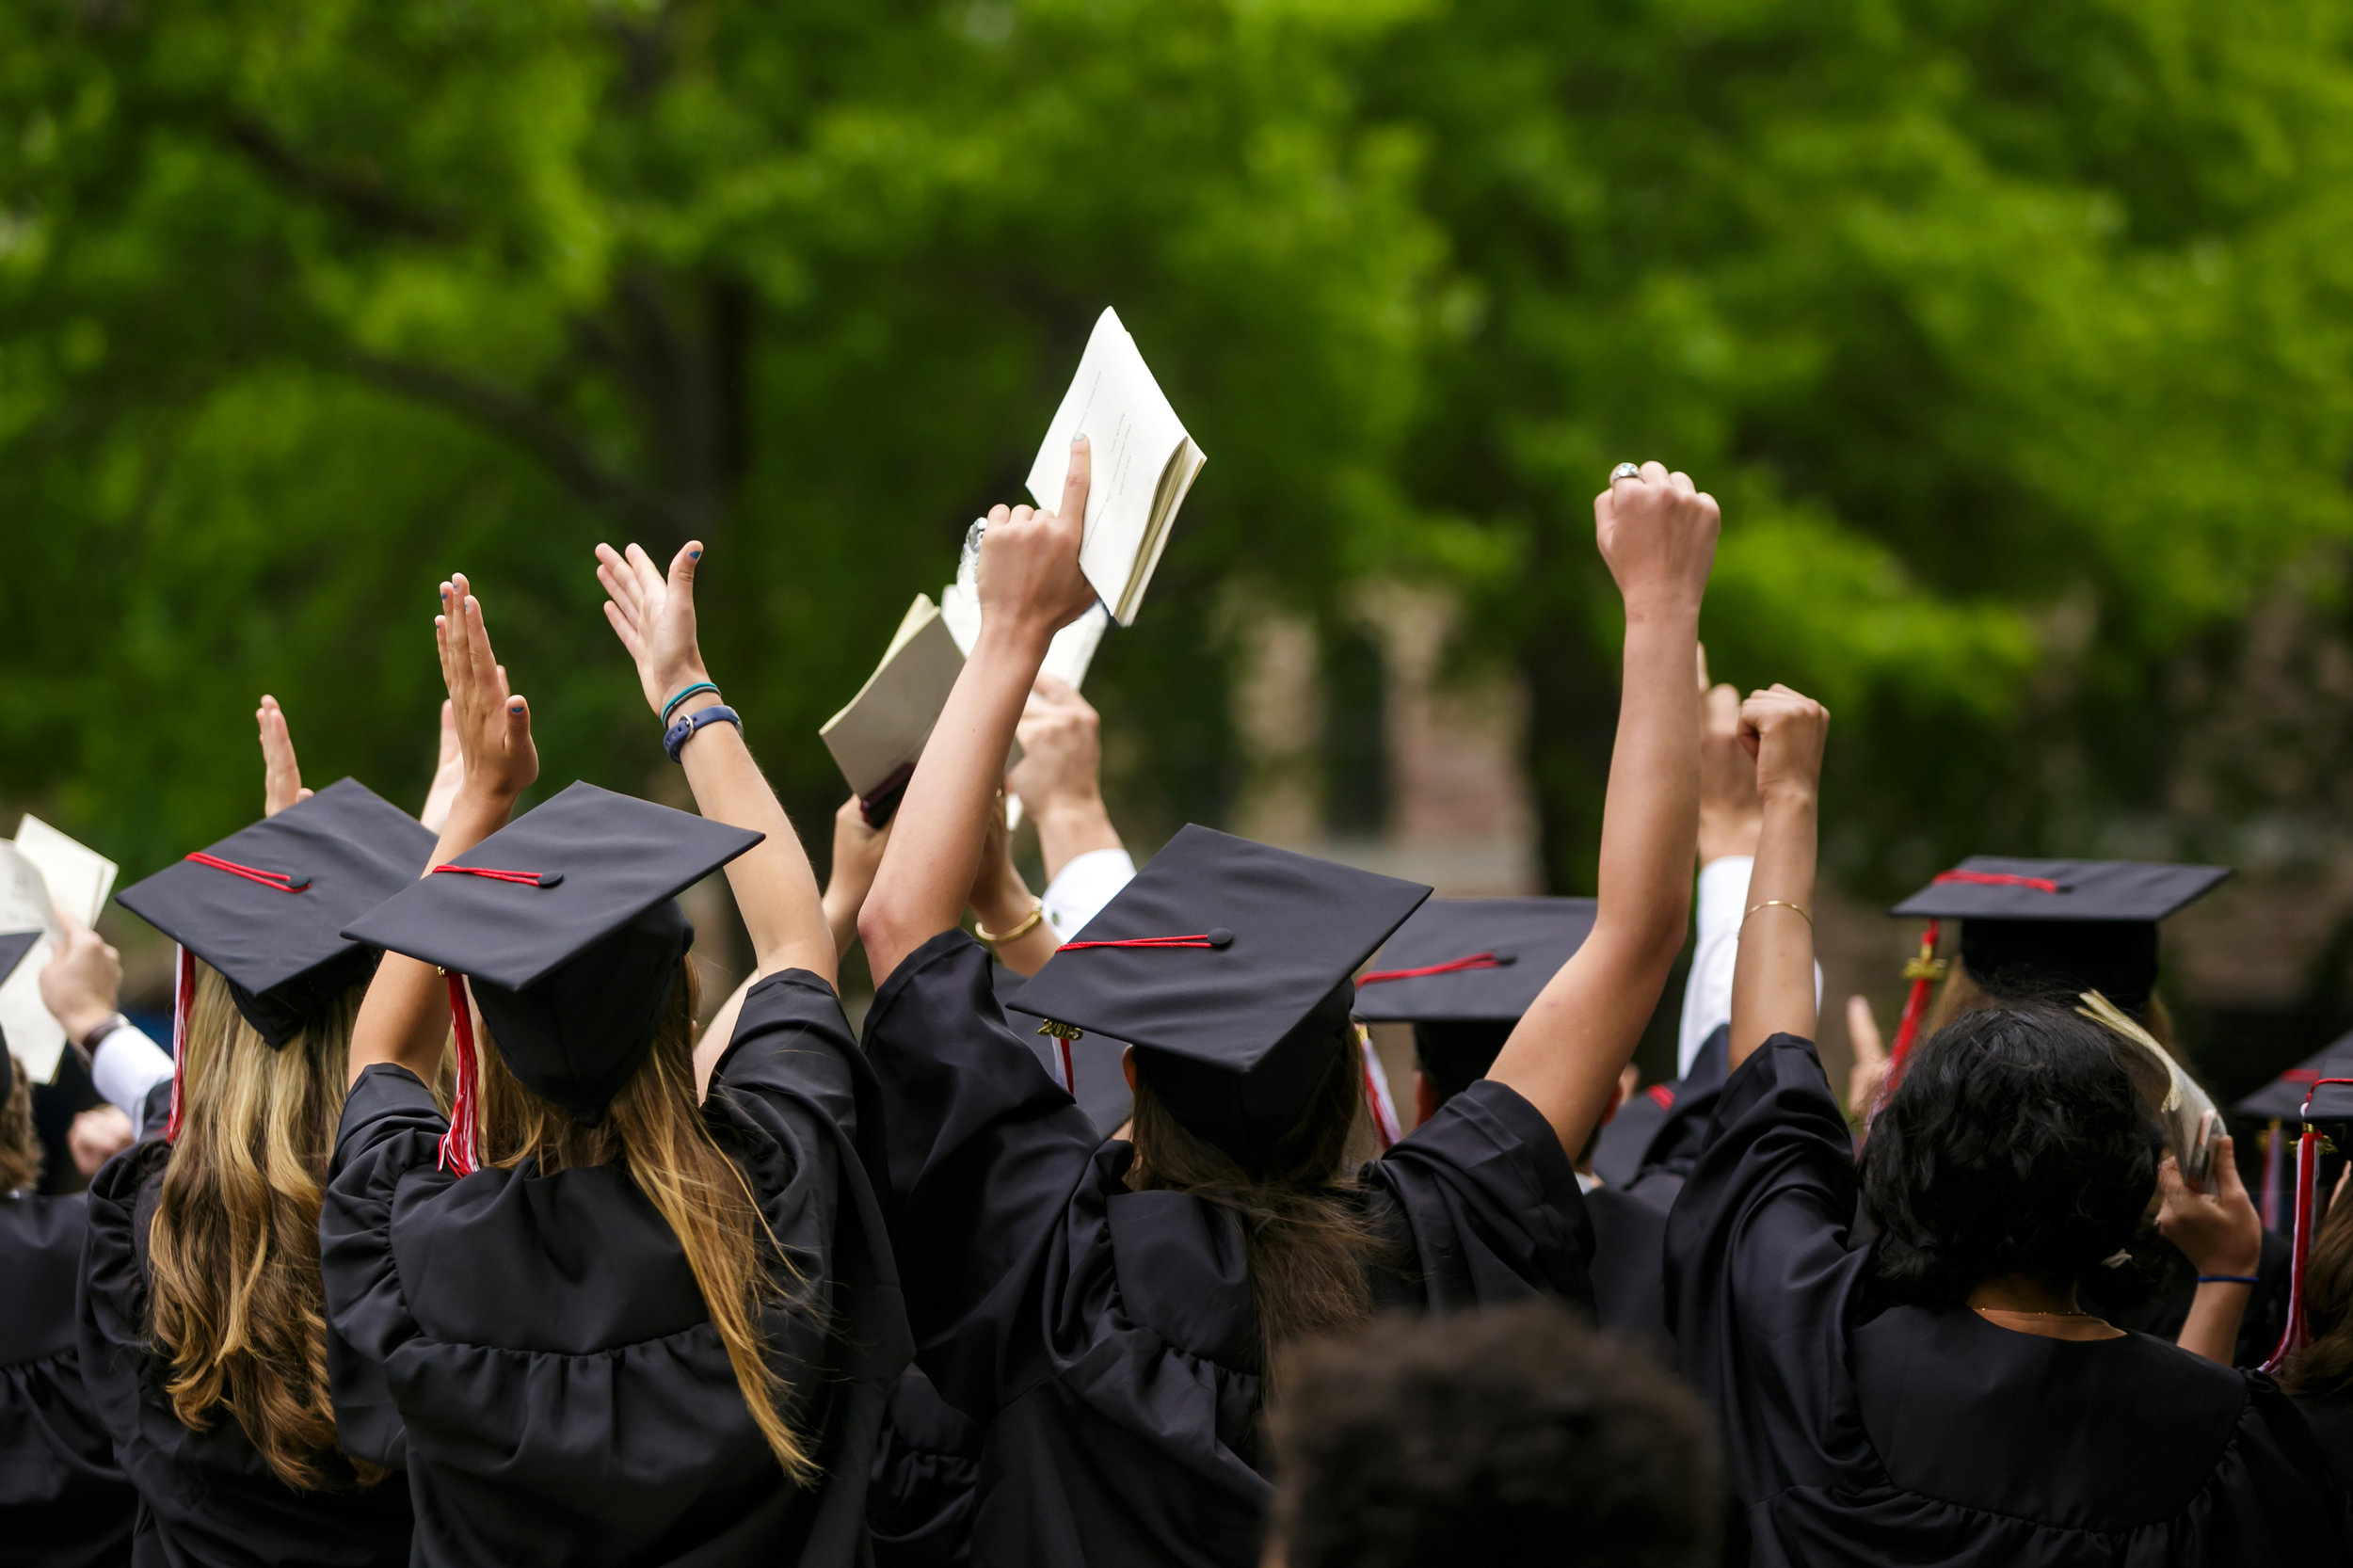 Improve alumni engagement with social login, and account linking with enterprise SSO– photo shows graduates celebrating in their caps and gowns